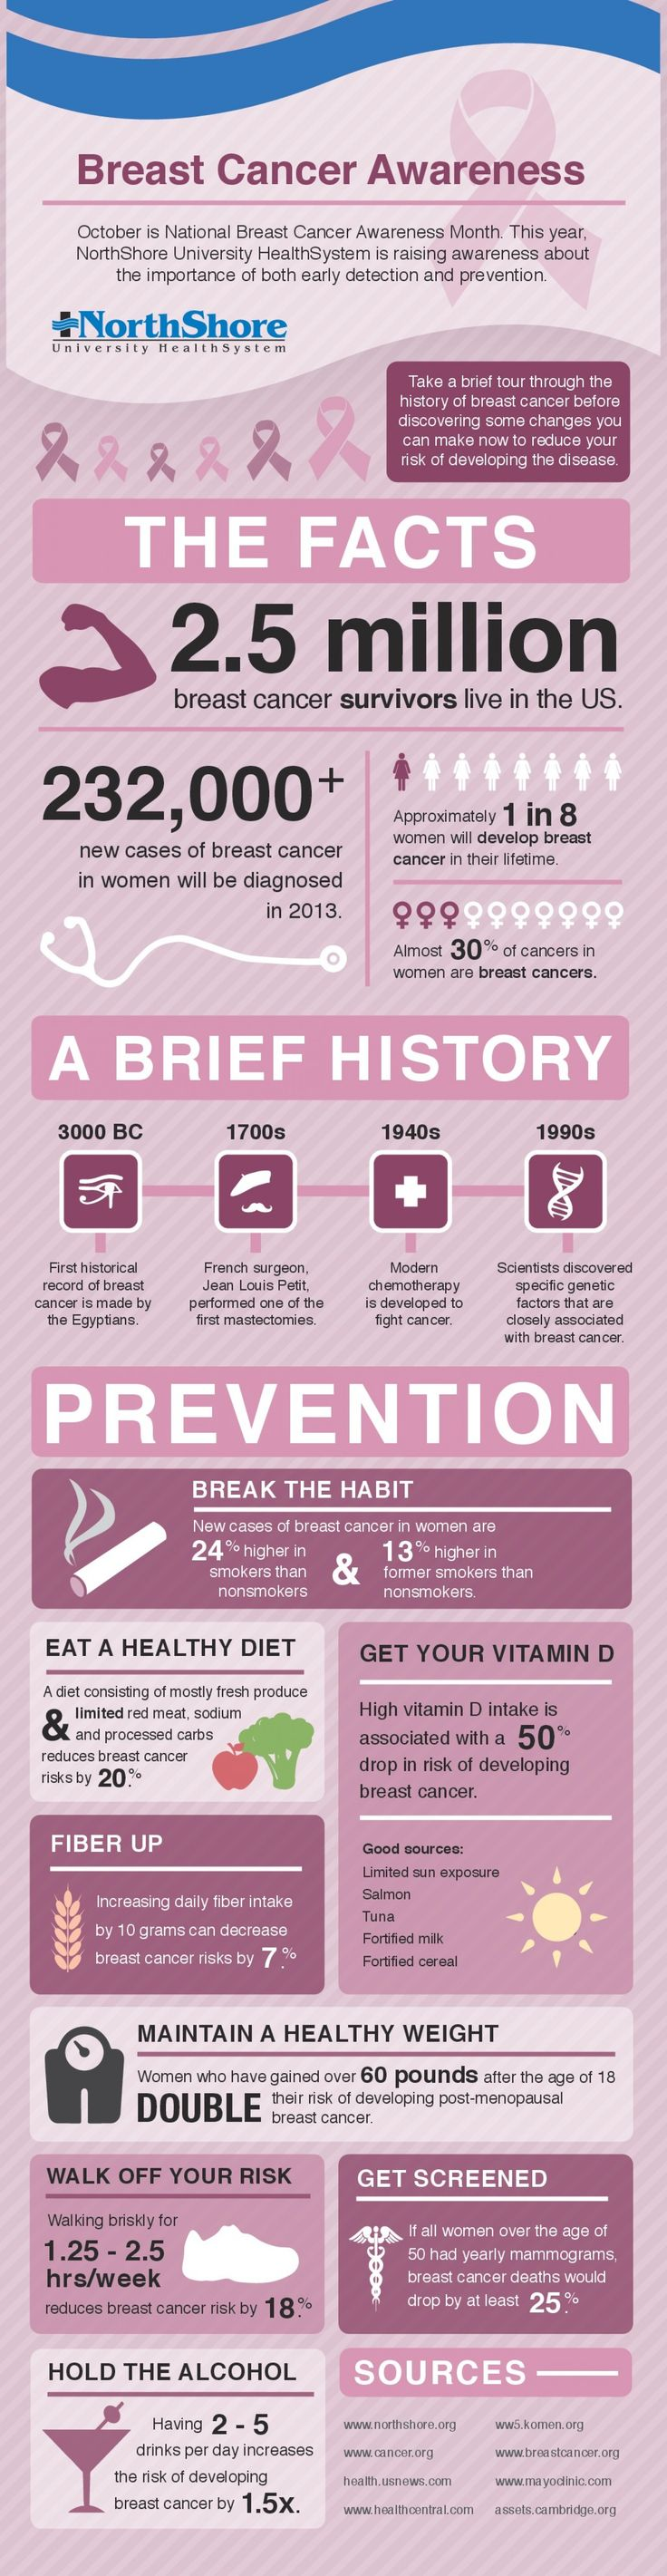 Evista And History Of Breast Cancer